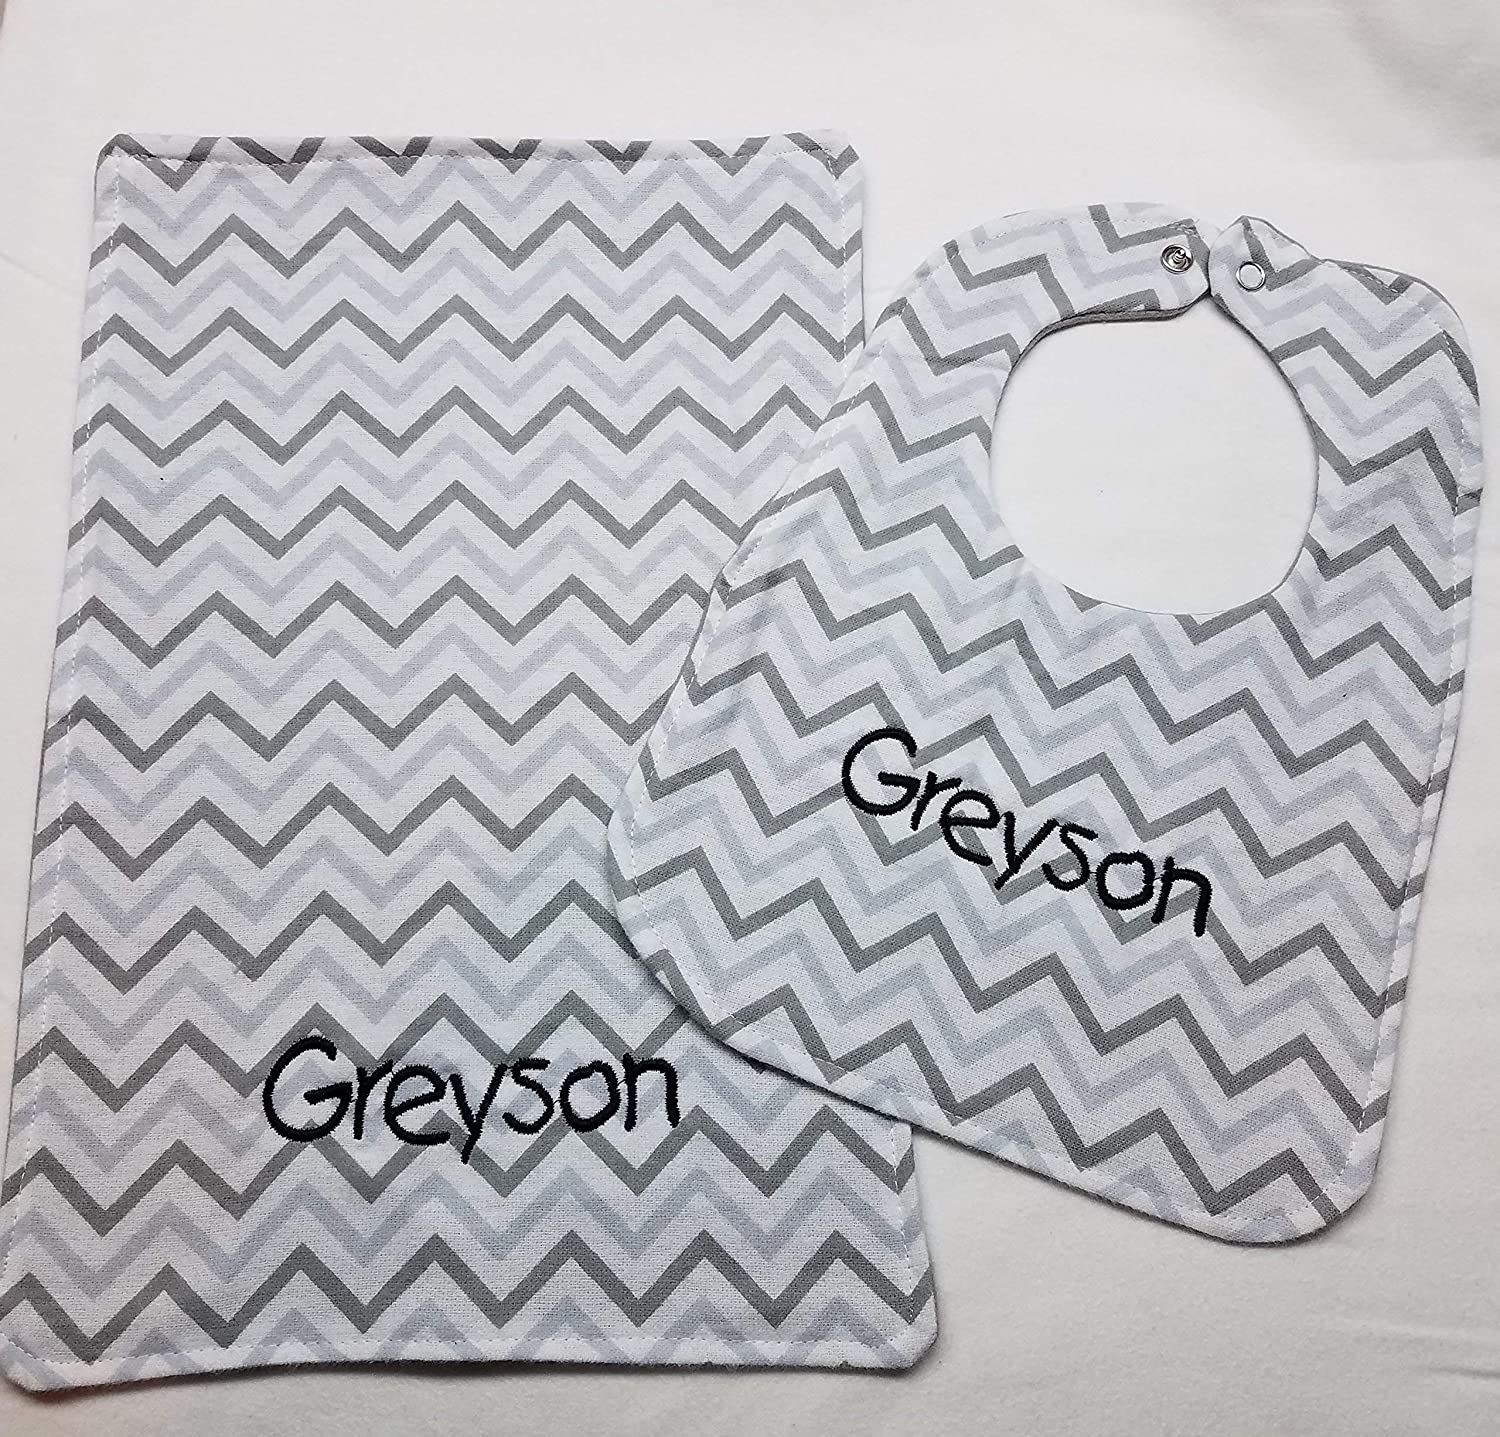 New Baby Bib Cloth Set with Personalized Name Grey Chevron